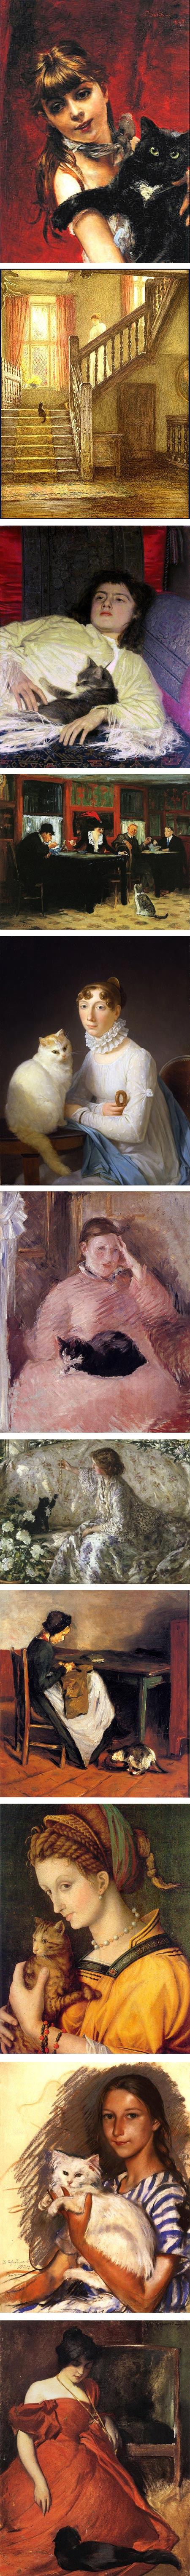 Women and cats Flickr set by Huismua: Giovanni Boldini, Helene Allingham, Ivan Kramskoi, John Sloan, Marguerite Gérard, Edouard Manet, Phillip William Steer, Max Lieberman, Francesco Bacchiacca, Zinaida Serebriakova, John White Alexander